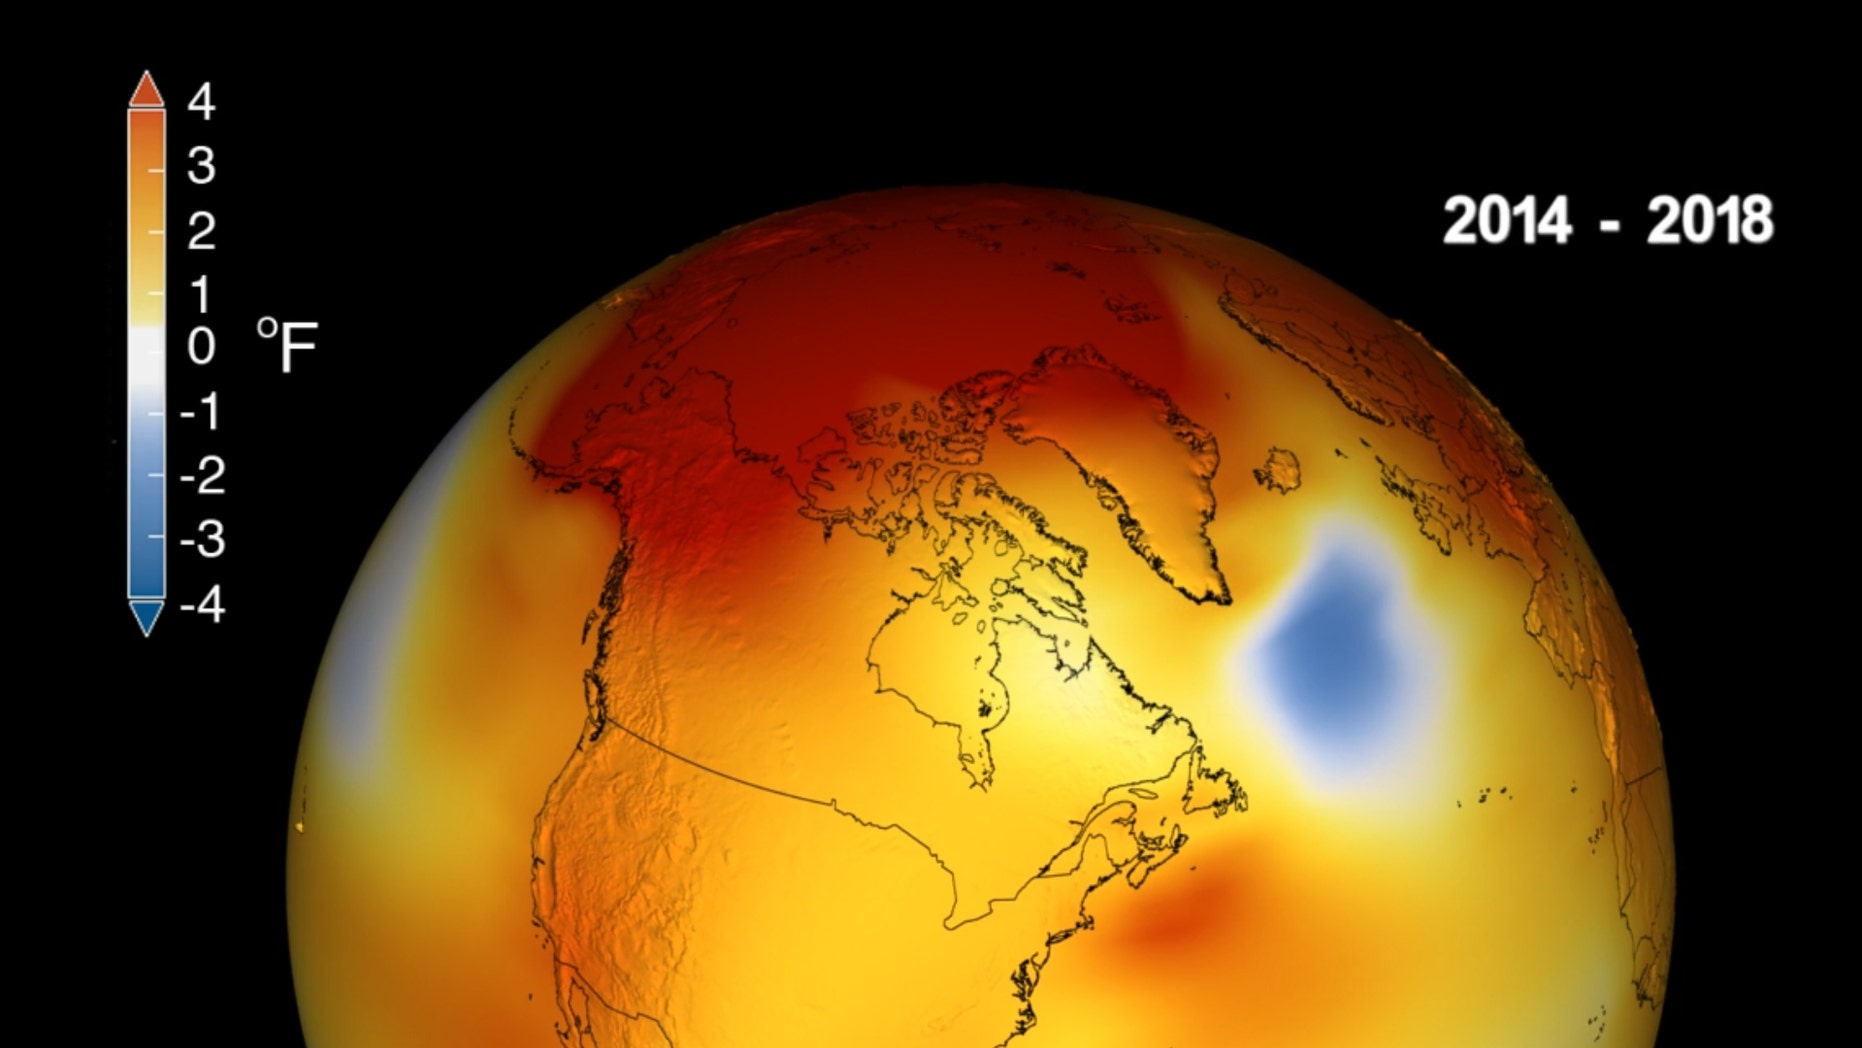 Earth's long-term warming trend can be seen in this visualization of NASA's global temperature record, which shows how the planet's temperatures are changing over time, compared to a baseline average from 1951 to 1980. The record is shown as a running five-year average. Credits: NASA's Scientific Visualization Studio/Kathryn Mersmann